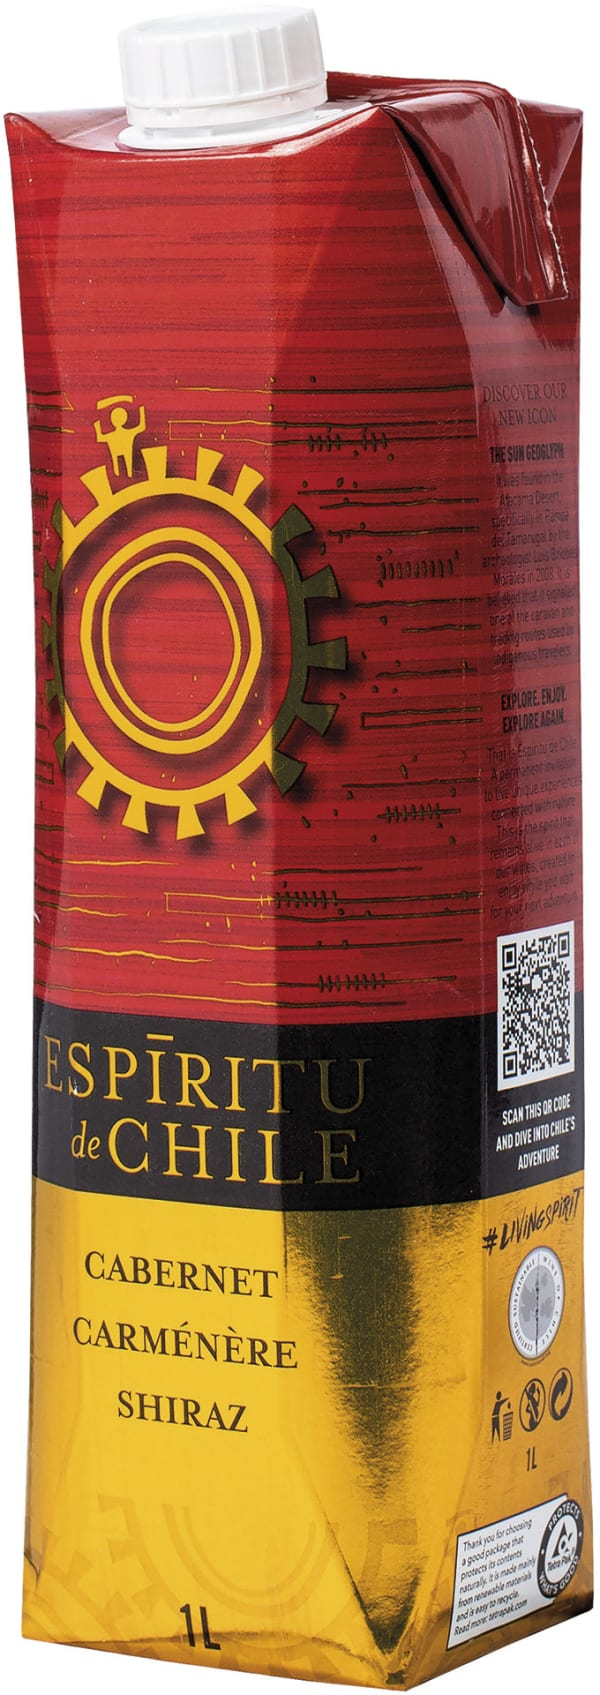 Espíritu de Chile Cabernet Carmenere Shiraz carton package